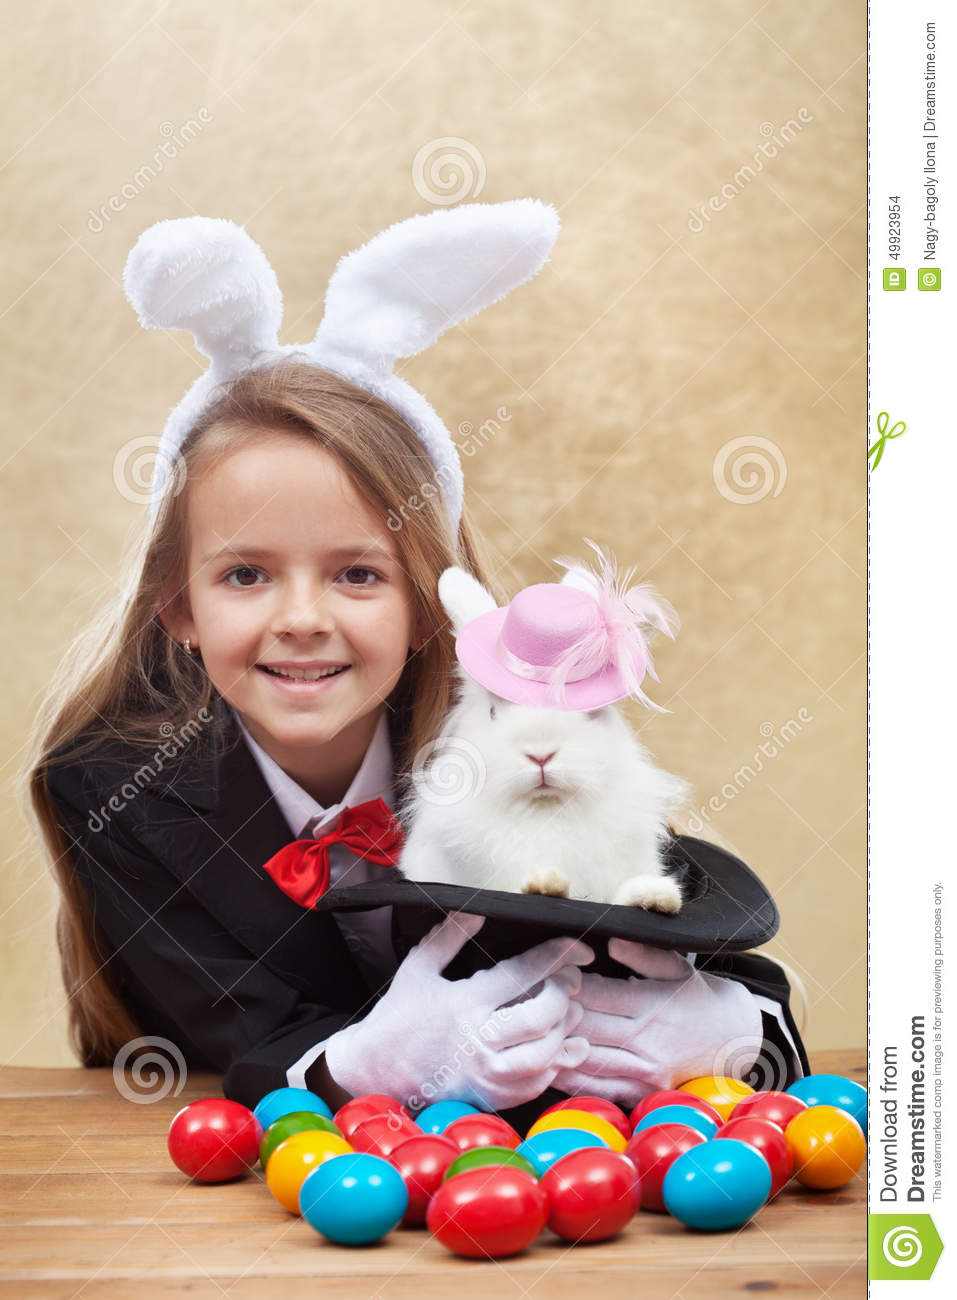 Happy magician girl holding cute bunny in magic hat